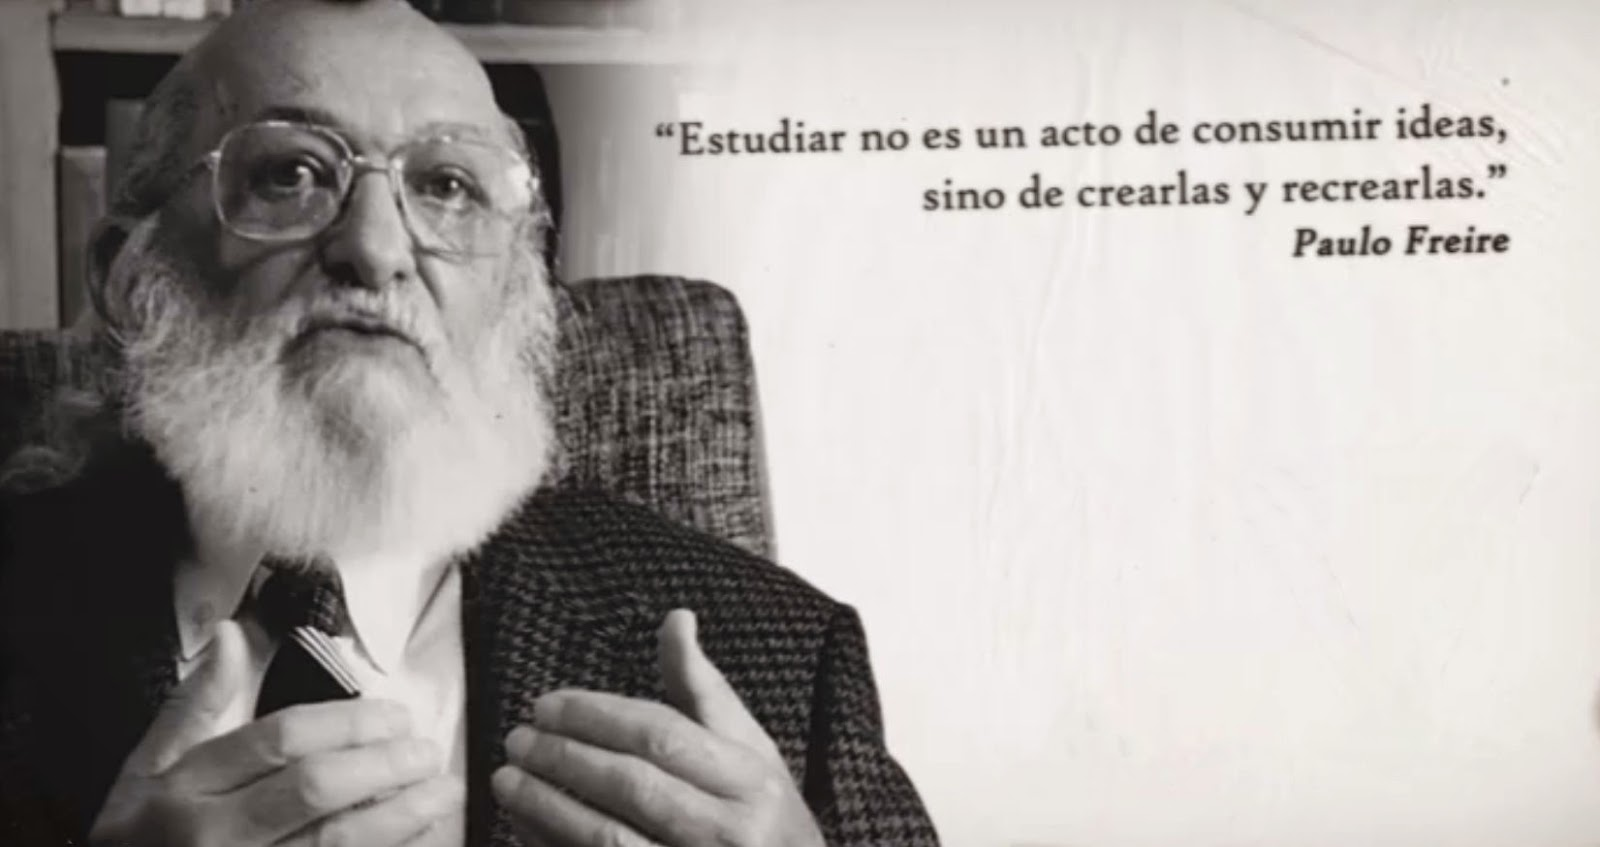 freire essay education In paulo freire's essay on the banking concept of education, he is a firm believer of advancement in today's teaching he splits the means of education into two distinct societies, the revolutionary and the oppression.